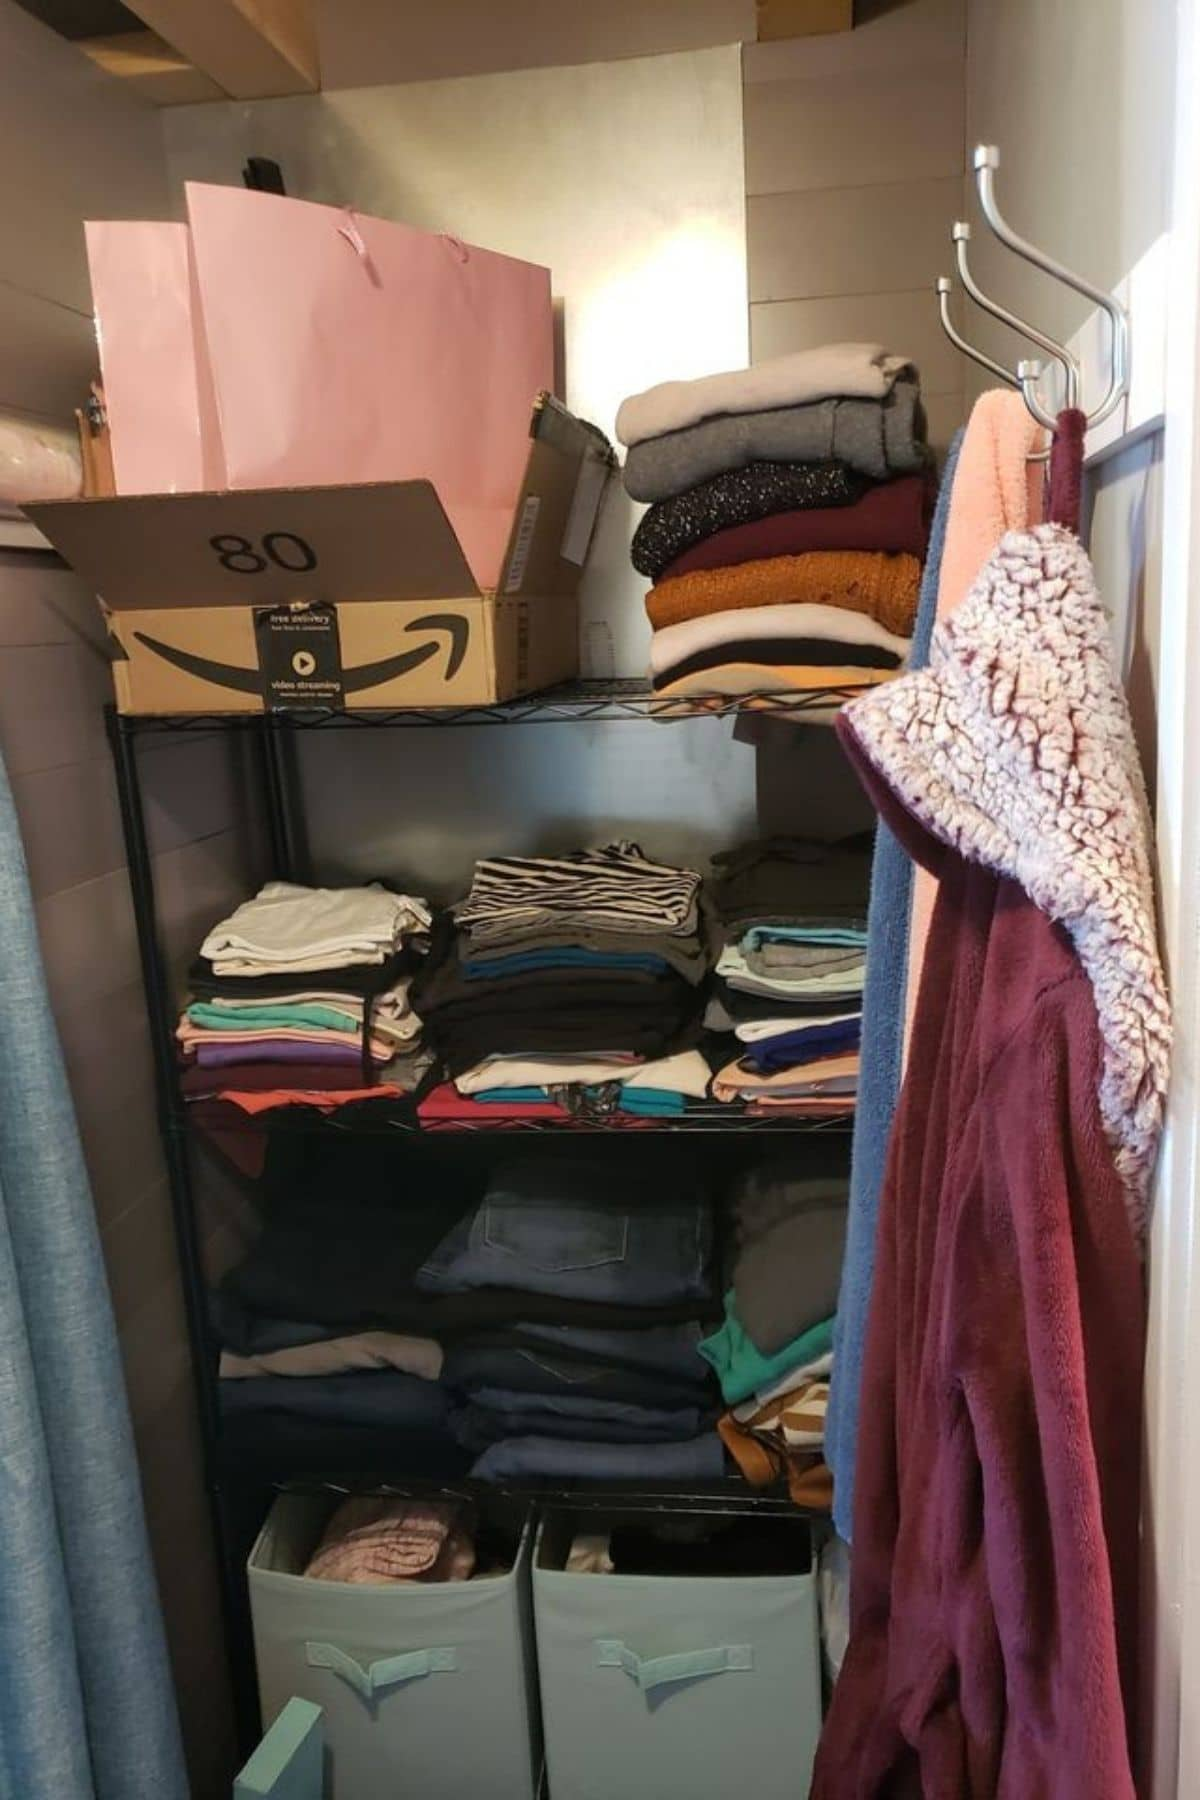 Storage shelf stacked with clothes next to hook holding robe